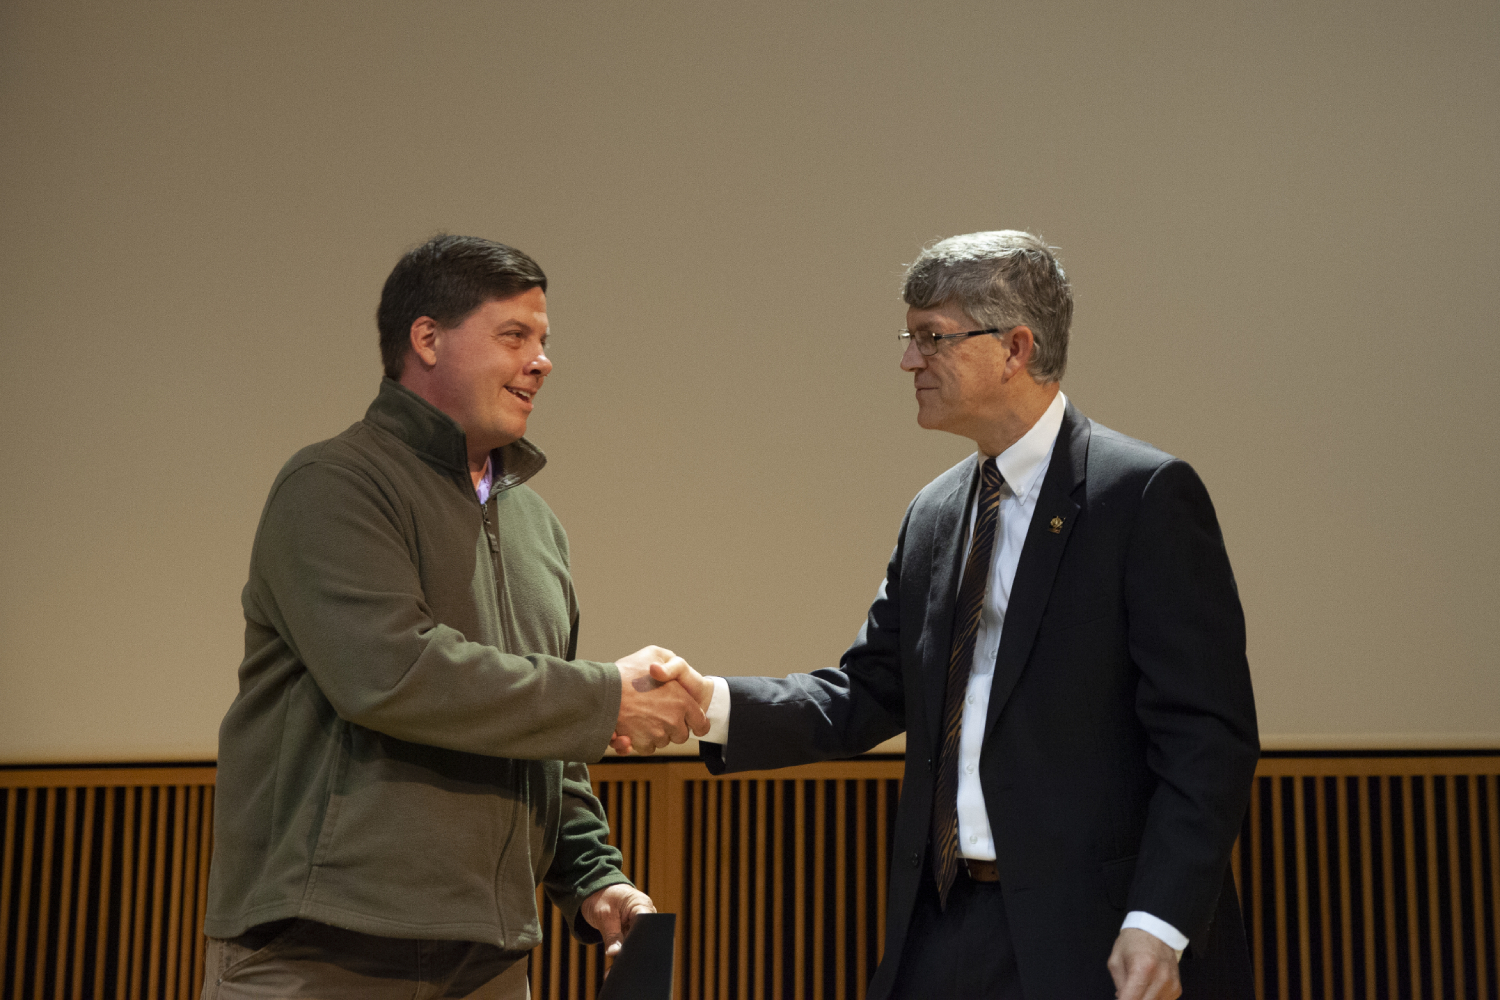 Jim Spain, Vice Provost of Undergraduate Studies, congratulates Ferris Pfeiffer, assistant professor in biomedical, biological and chemical engineering, for receiving the Research Mentor of the Year Award.